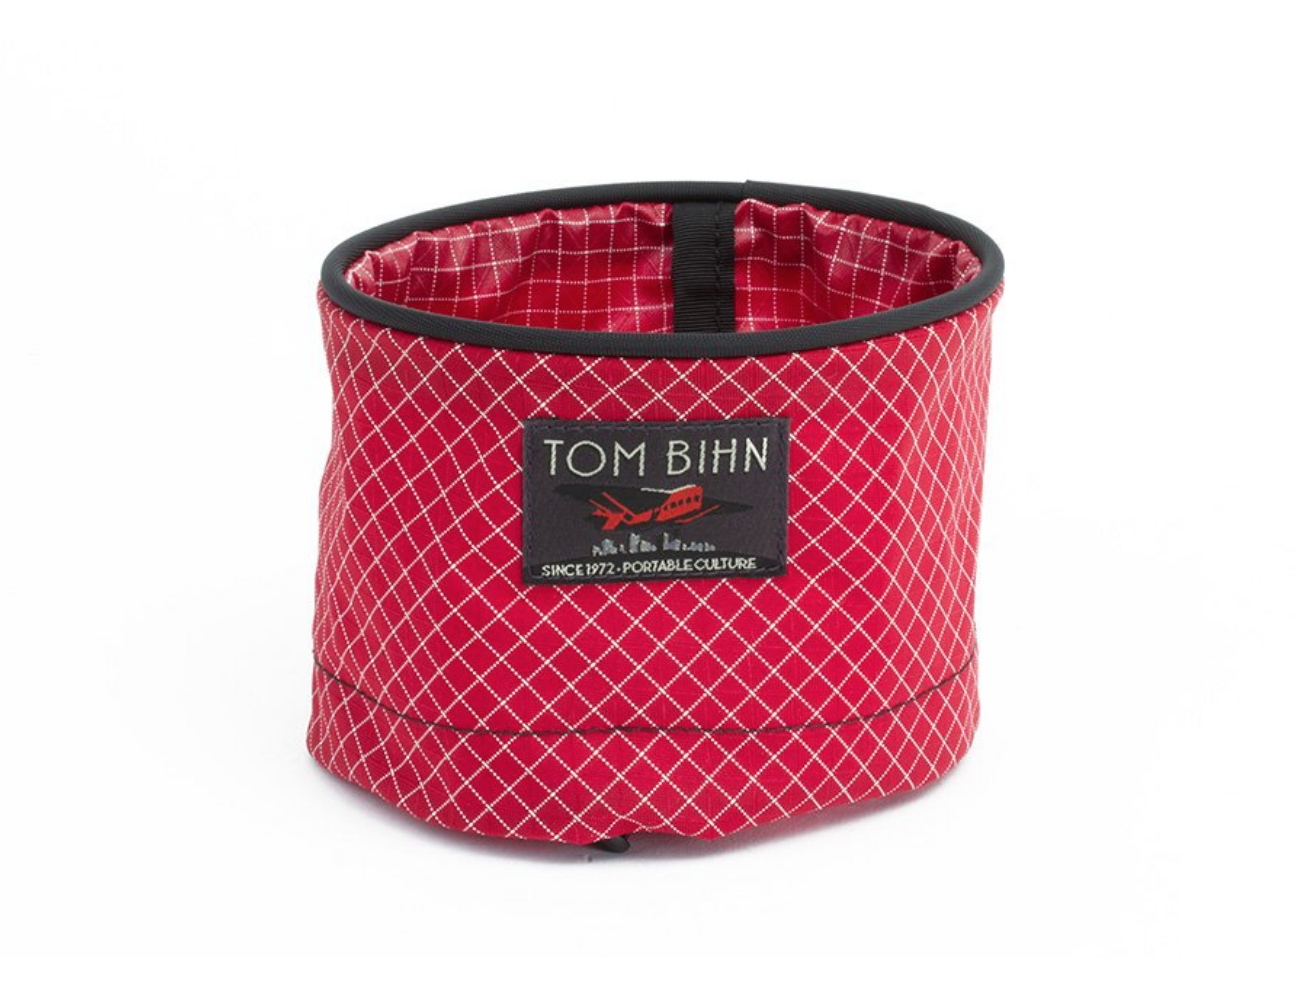 FOR YOUR SANITY - TOM BIHN Travel Trays